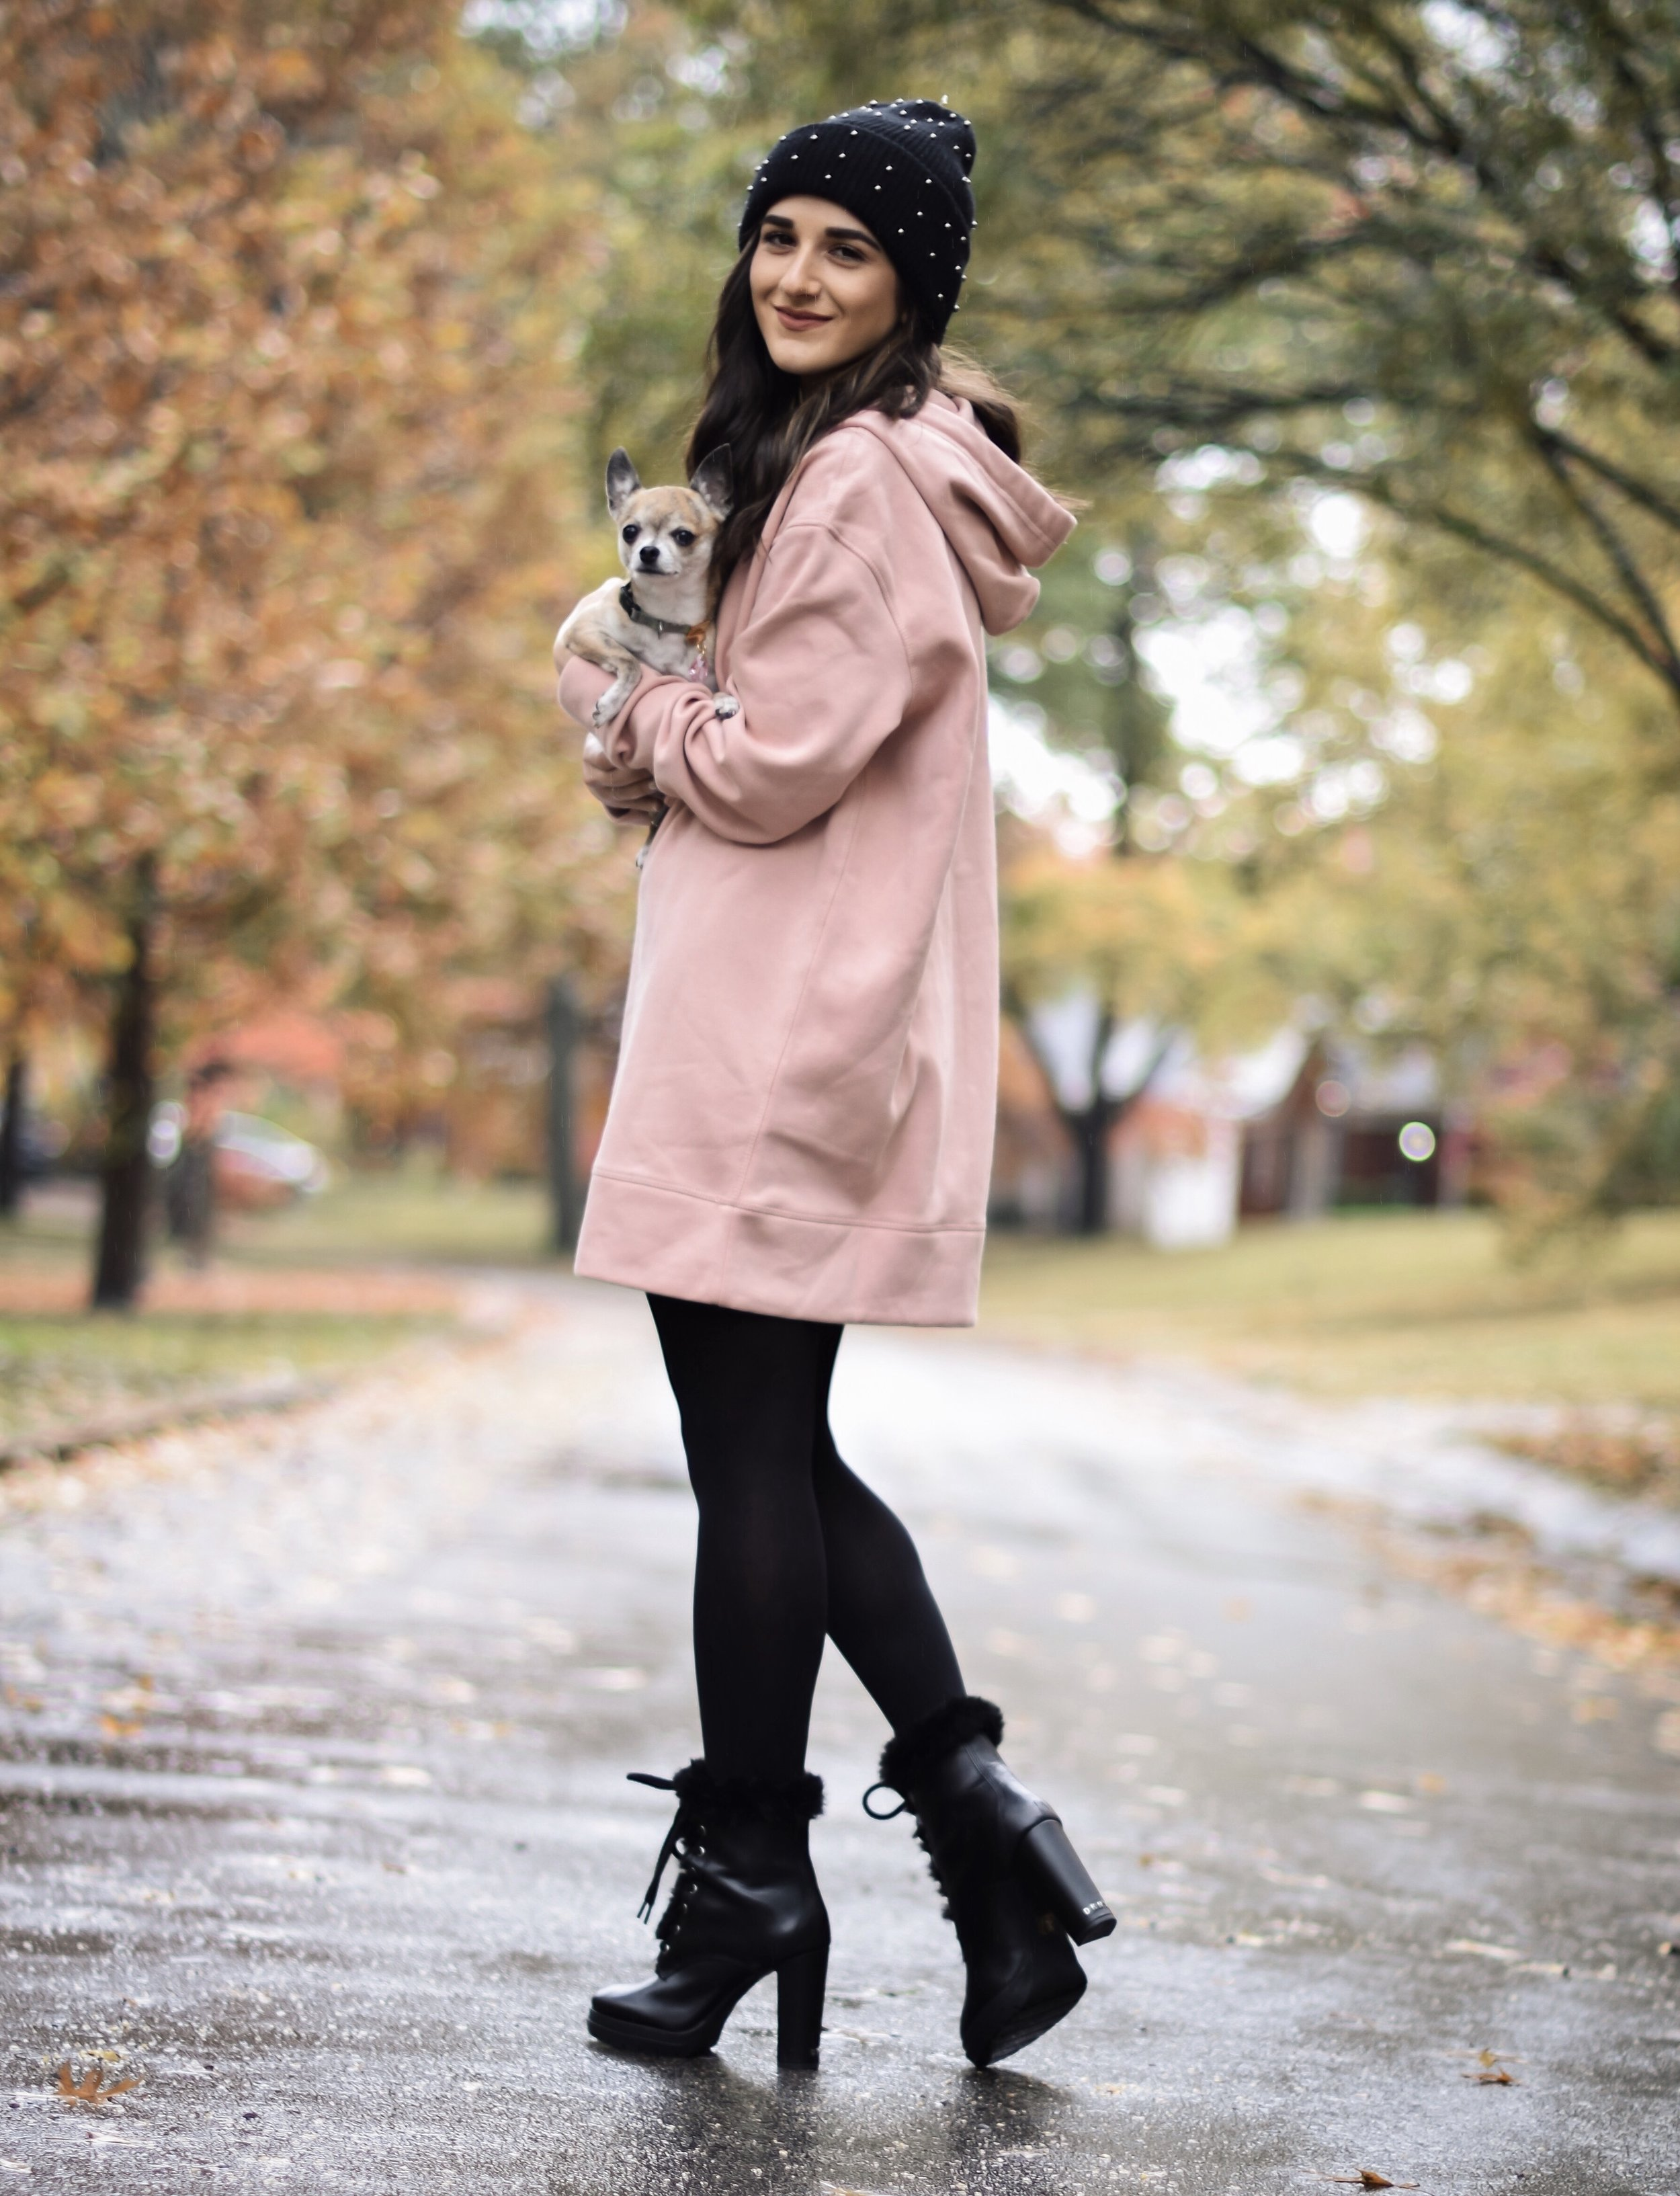 Getting Winter Ready With Macy's Esther Santer Fashion Blog NYC Street Style Blogger Outfit OOTD Trendy Chihuahua Pink Sweatshirt Dress Black Beanie Black Fur Booties Shoes Boots Fall  Winter Outfit Tights Beautiful H&M Shop Cute Puppy Dog Inspiration.jpg